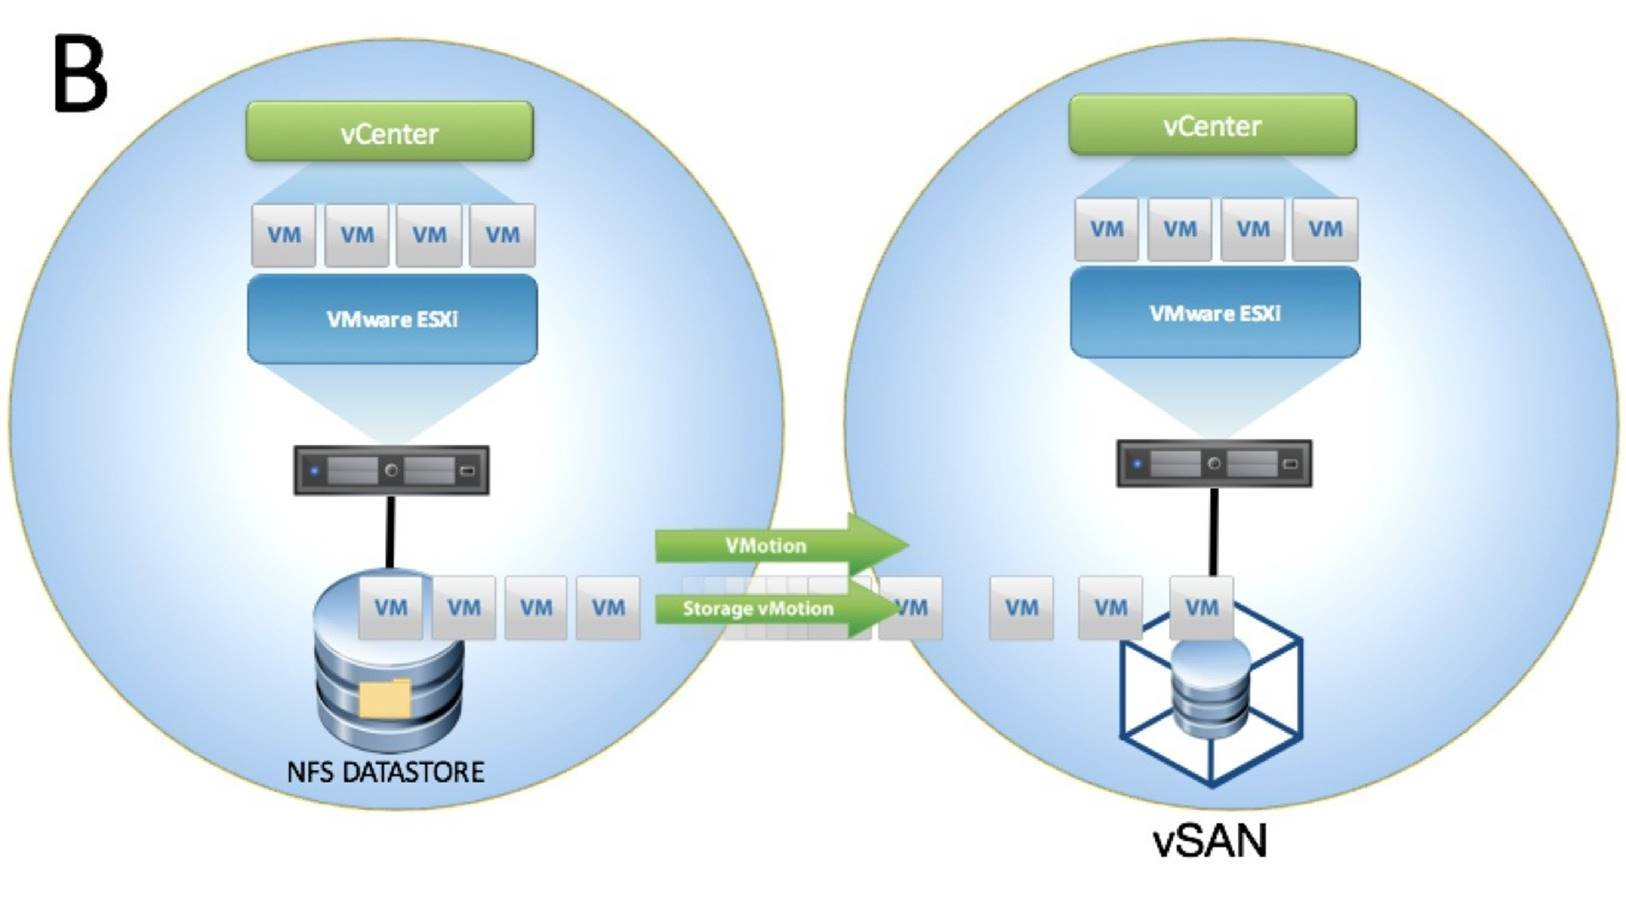 Two vCenters, Two SSO Domains